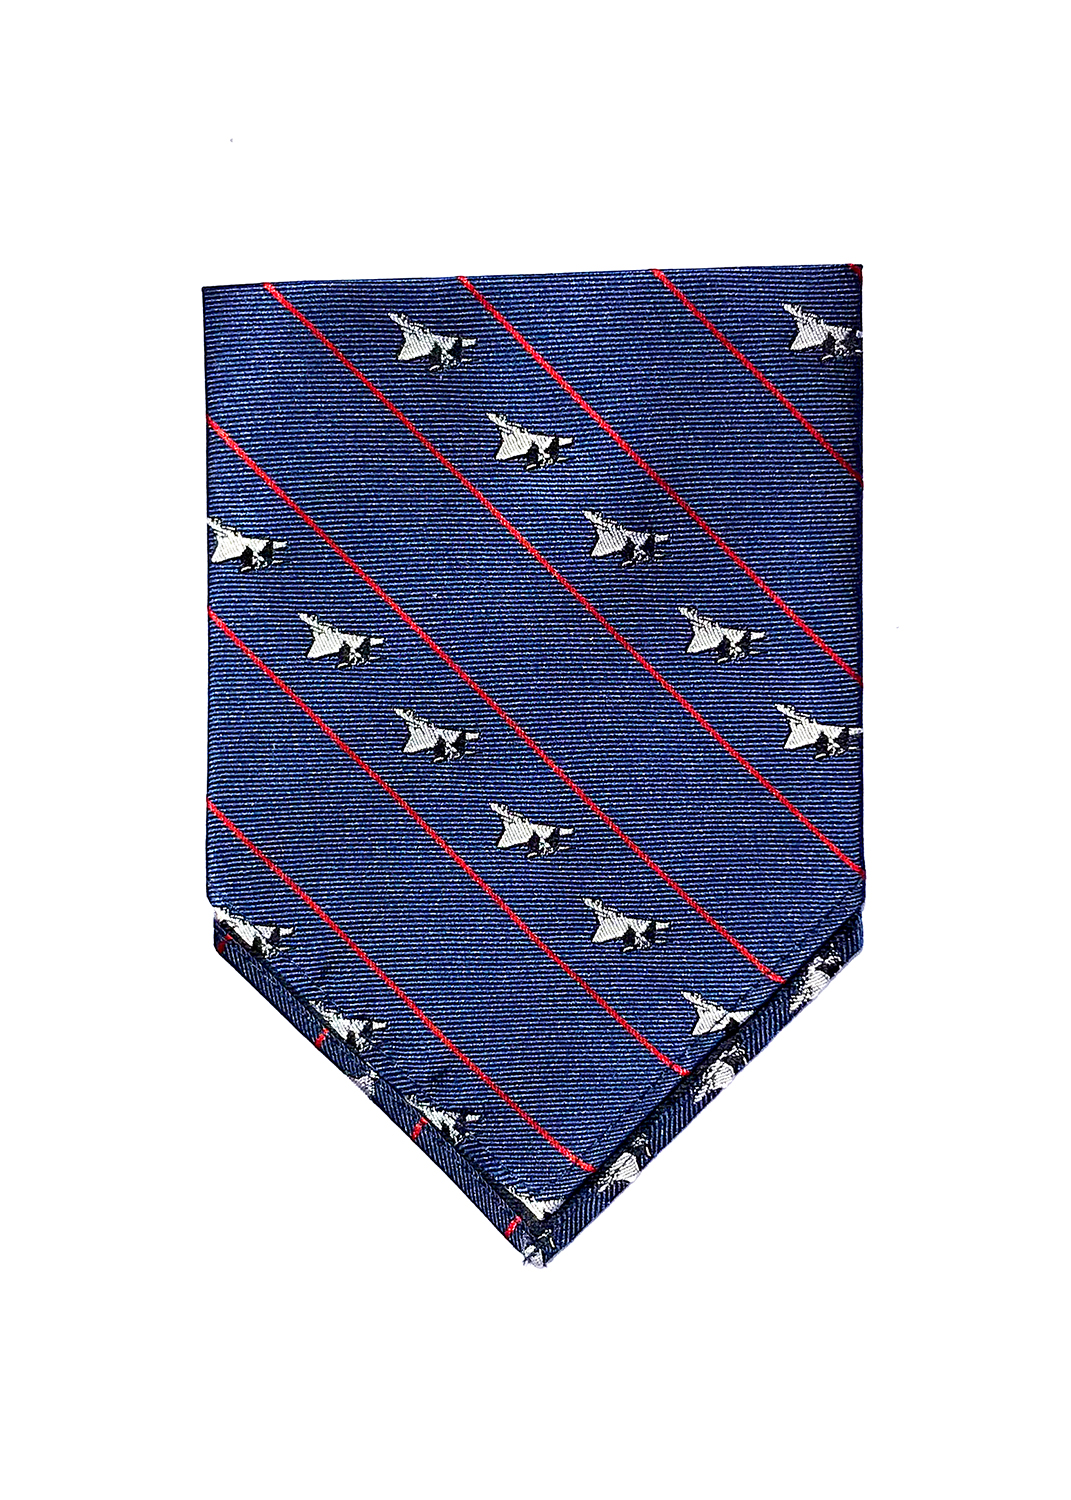 doppeldecker design aviation aircraft airplane pocket square f15